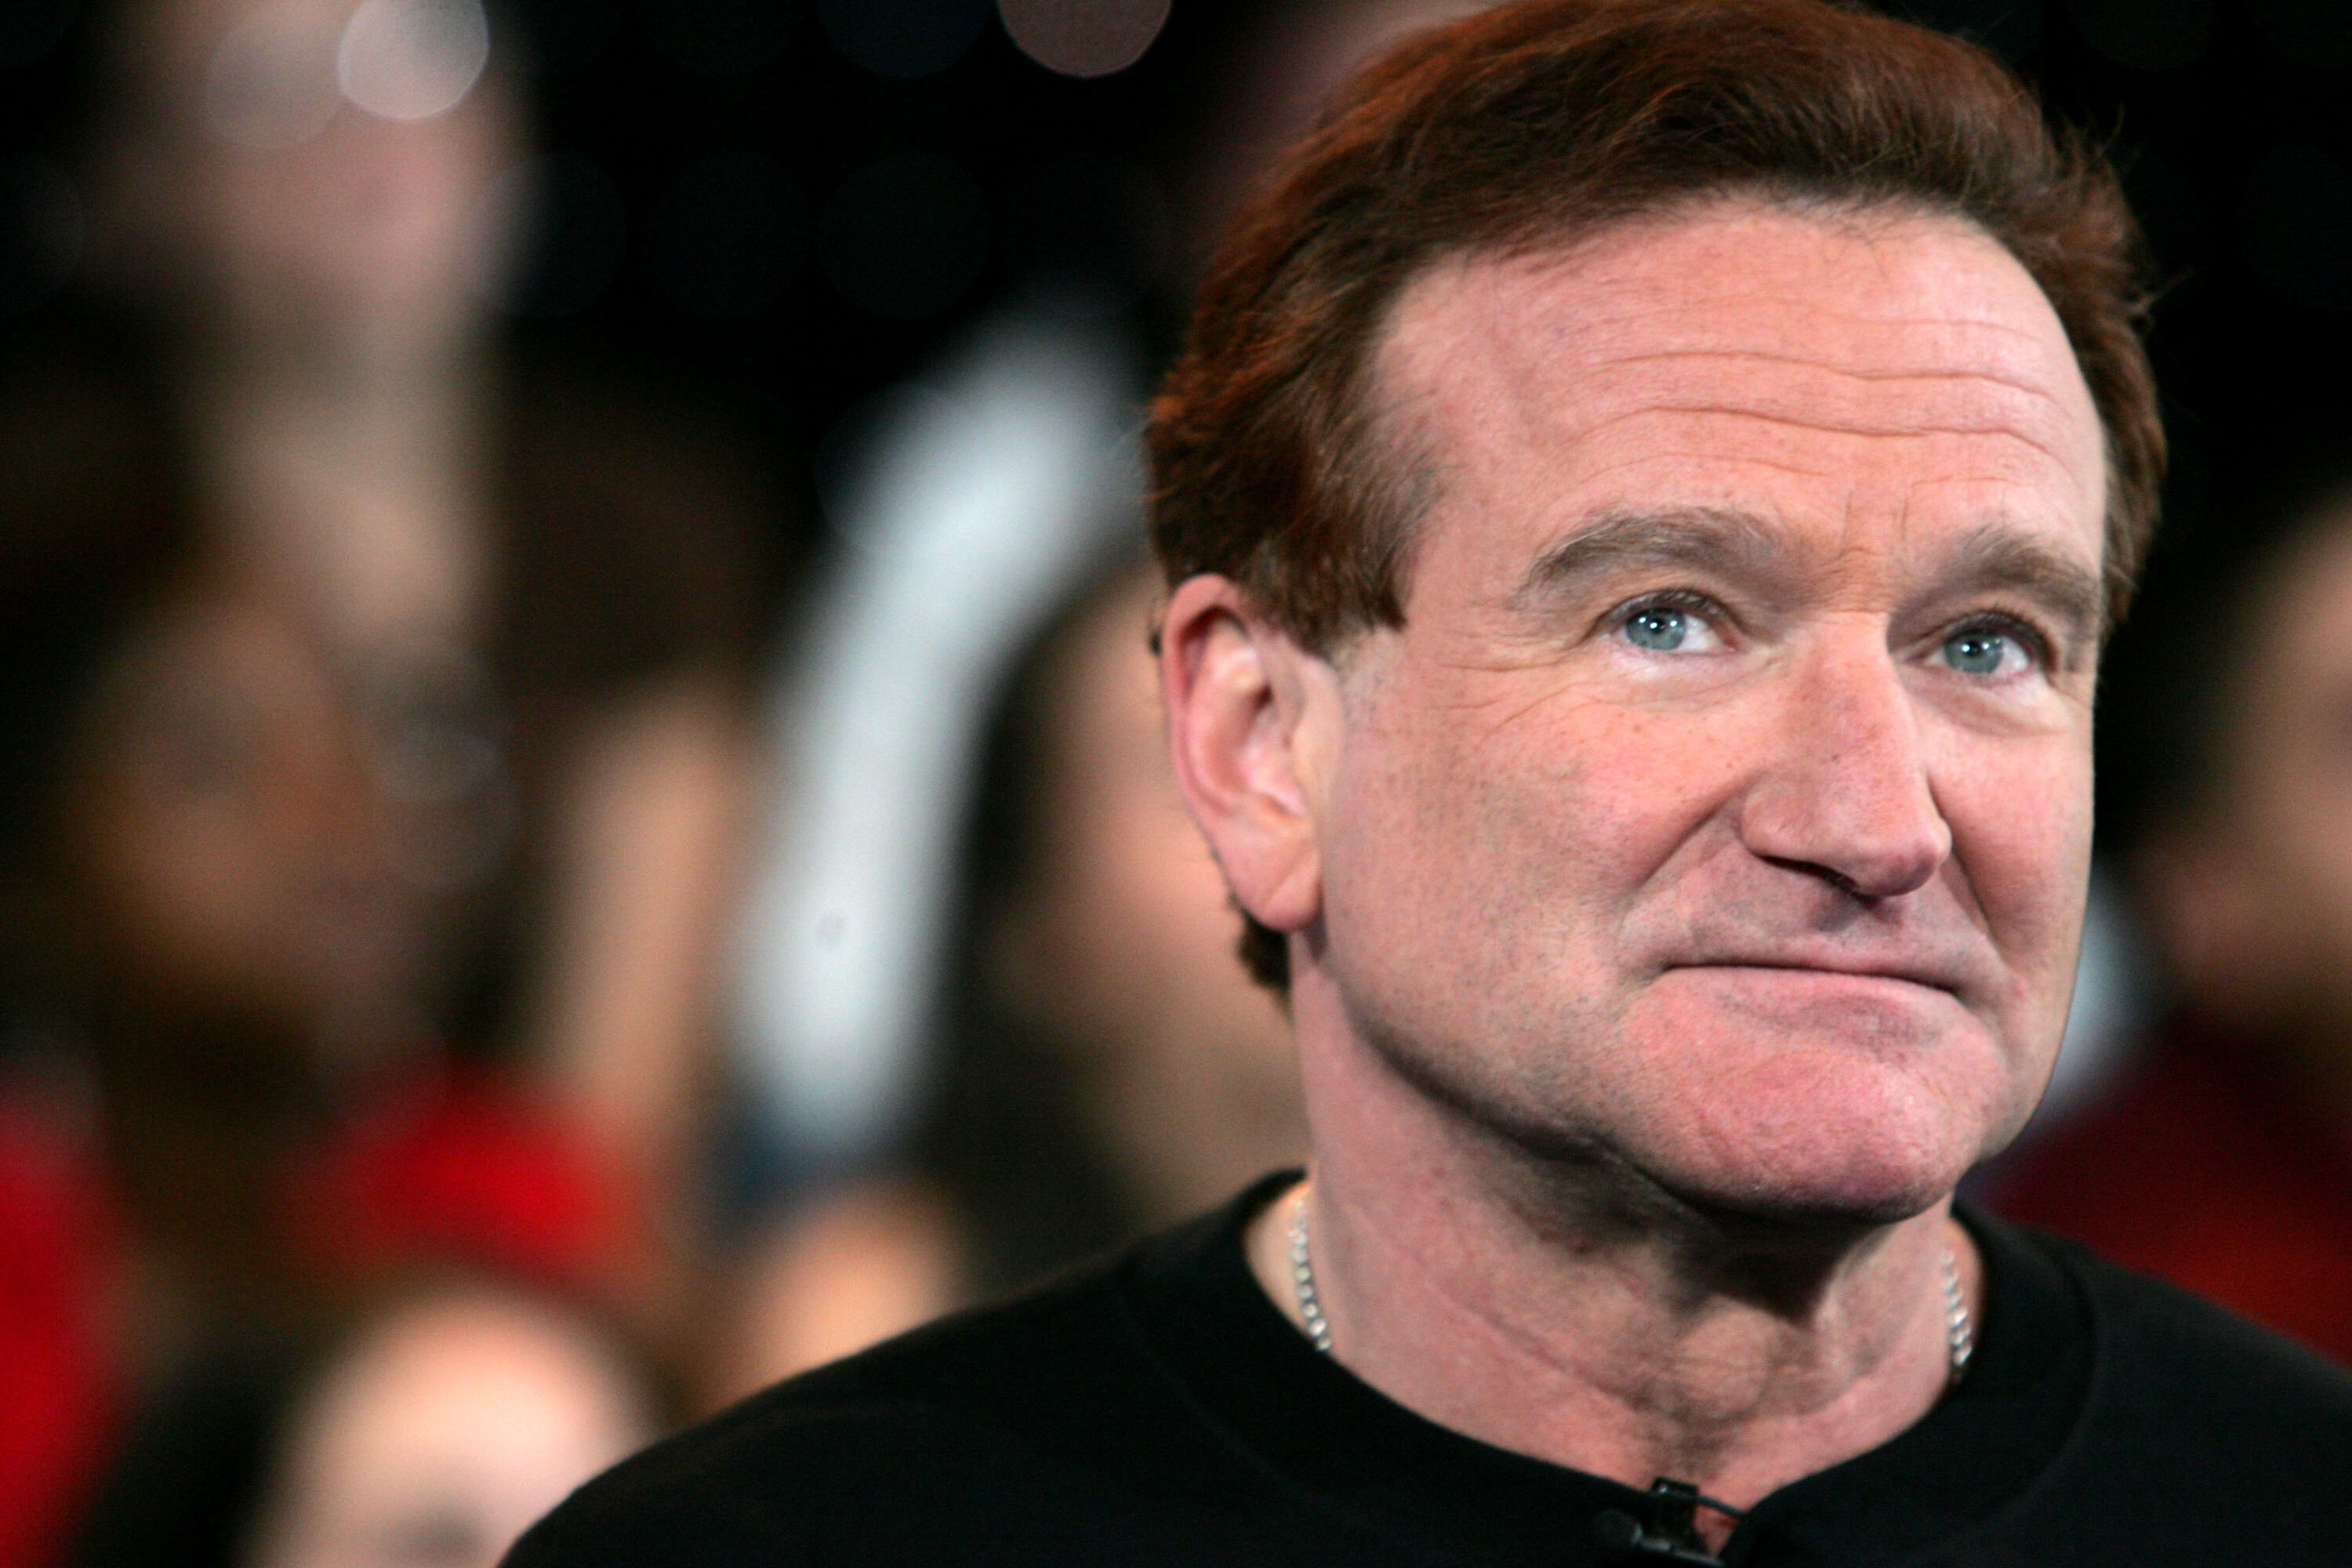 Robin Williams: Remembering him on what would have been his 70th birthday